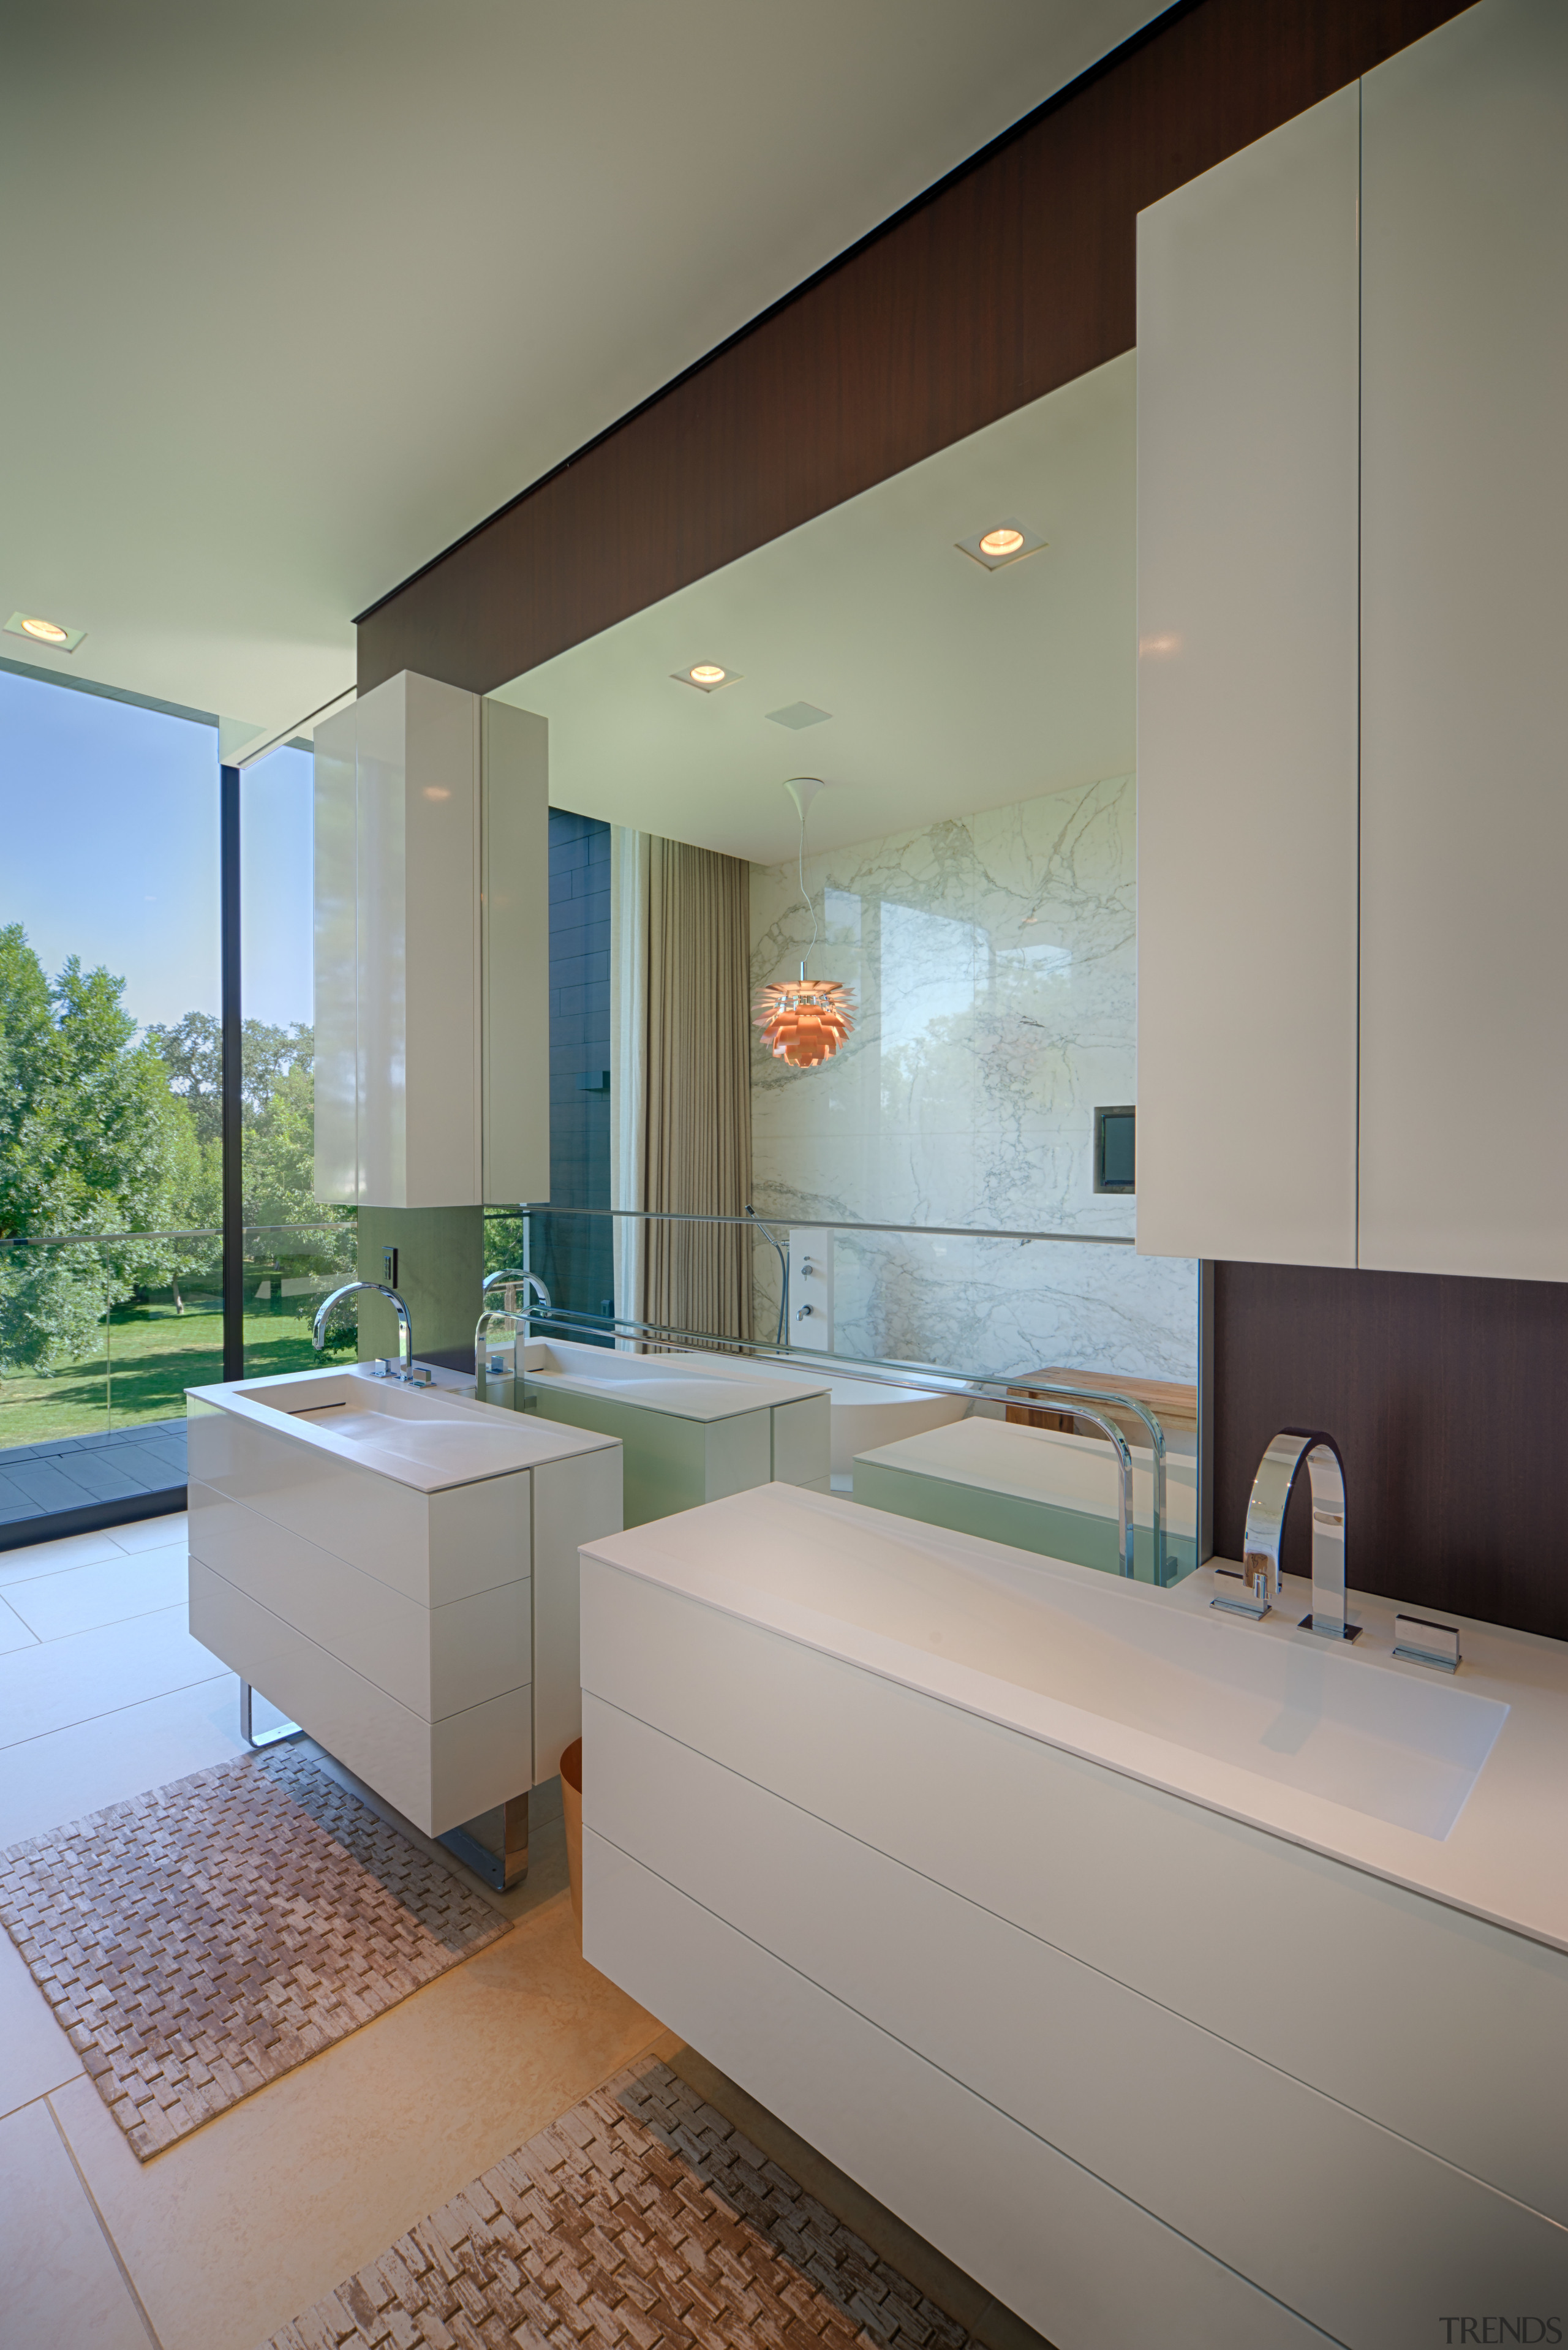 Wading basins are integrated into the vanities on architecture, bathroom, ceiling, home, interior design, real estate, room, sink, gray